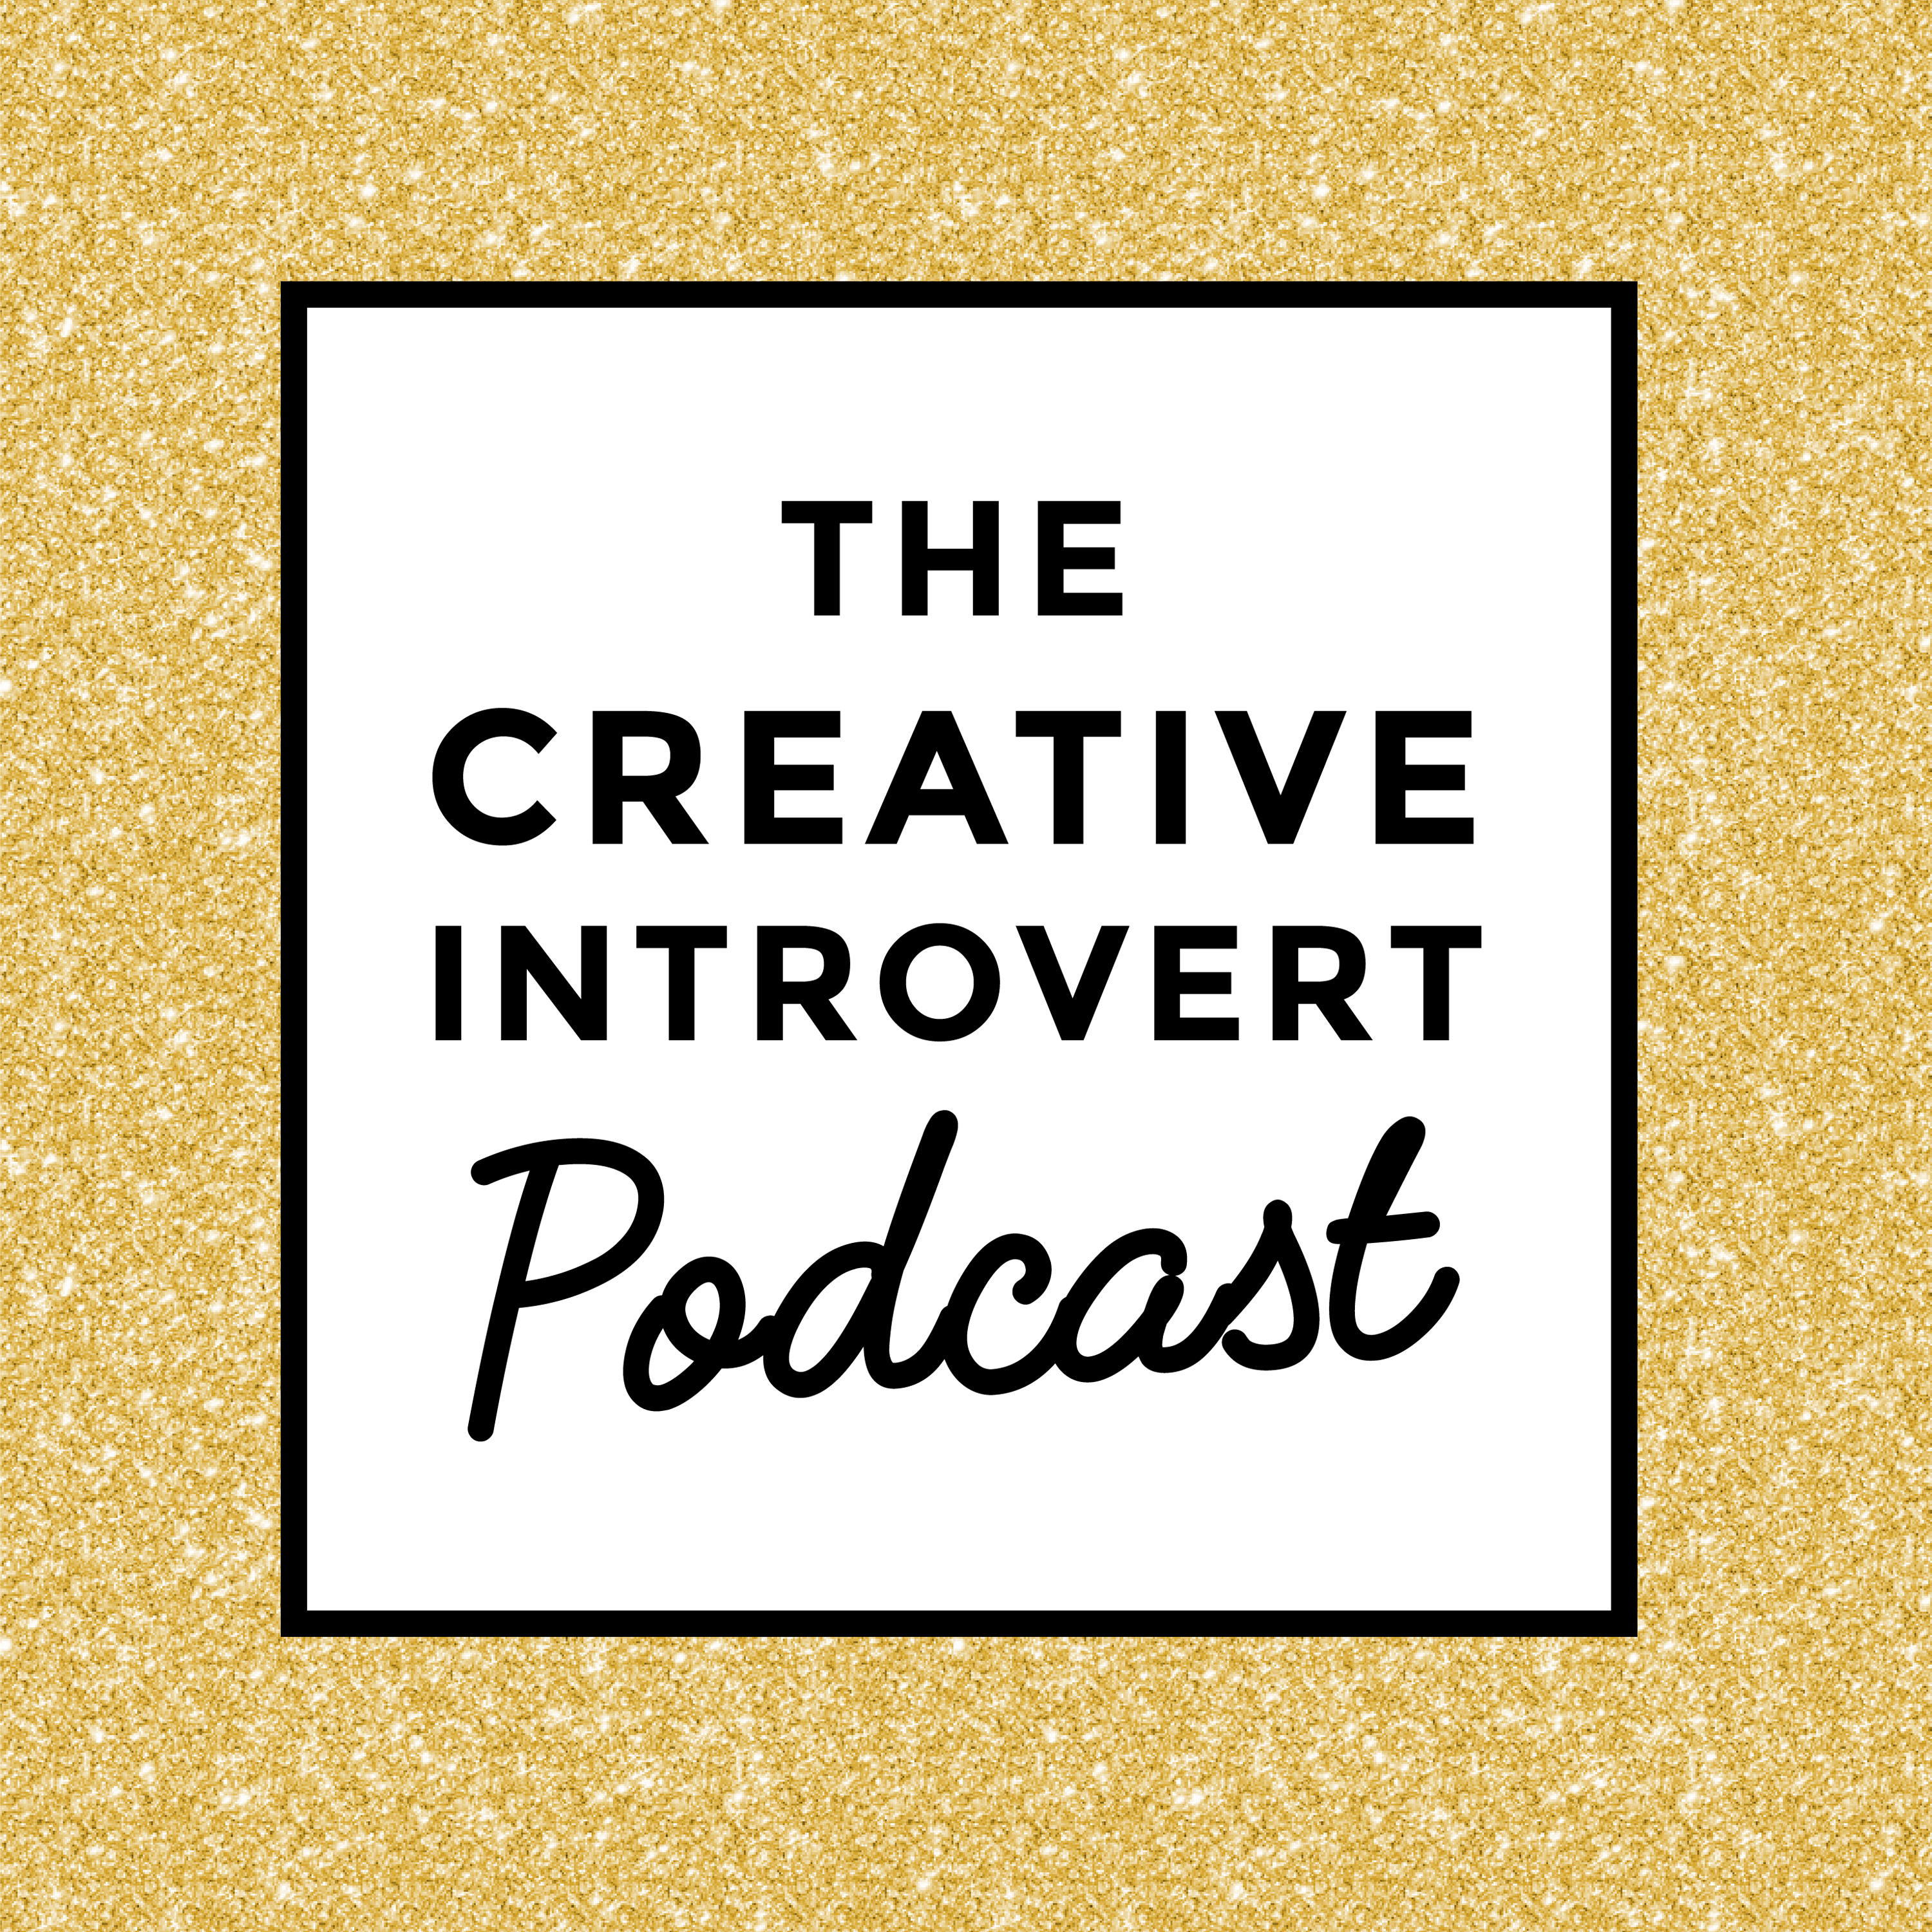 The Creative Introvert Podcast